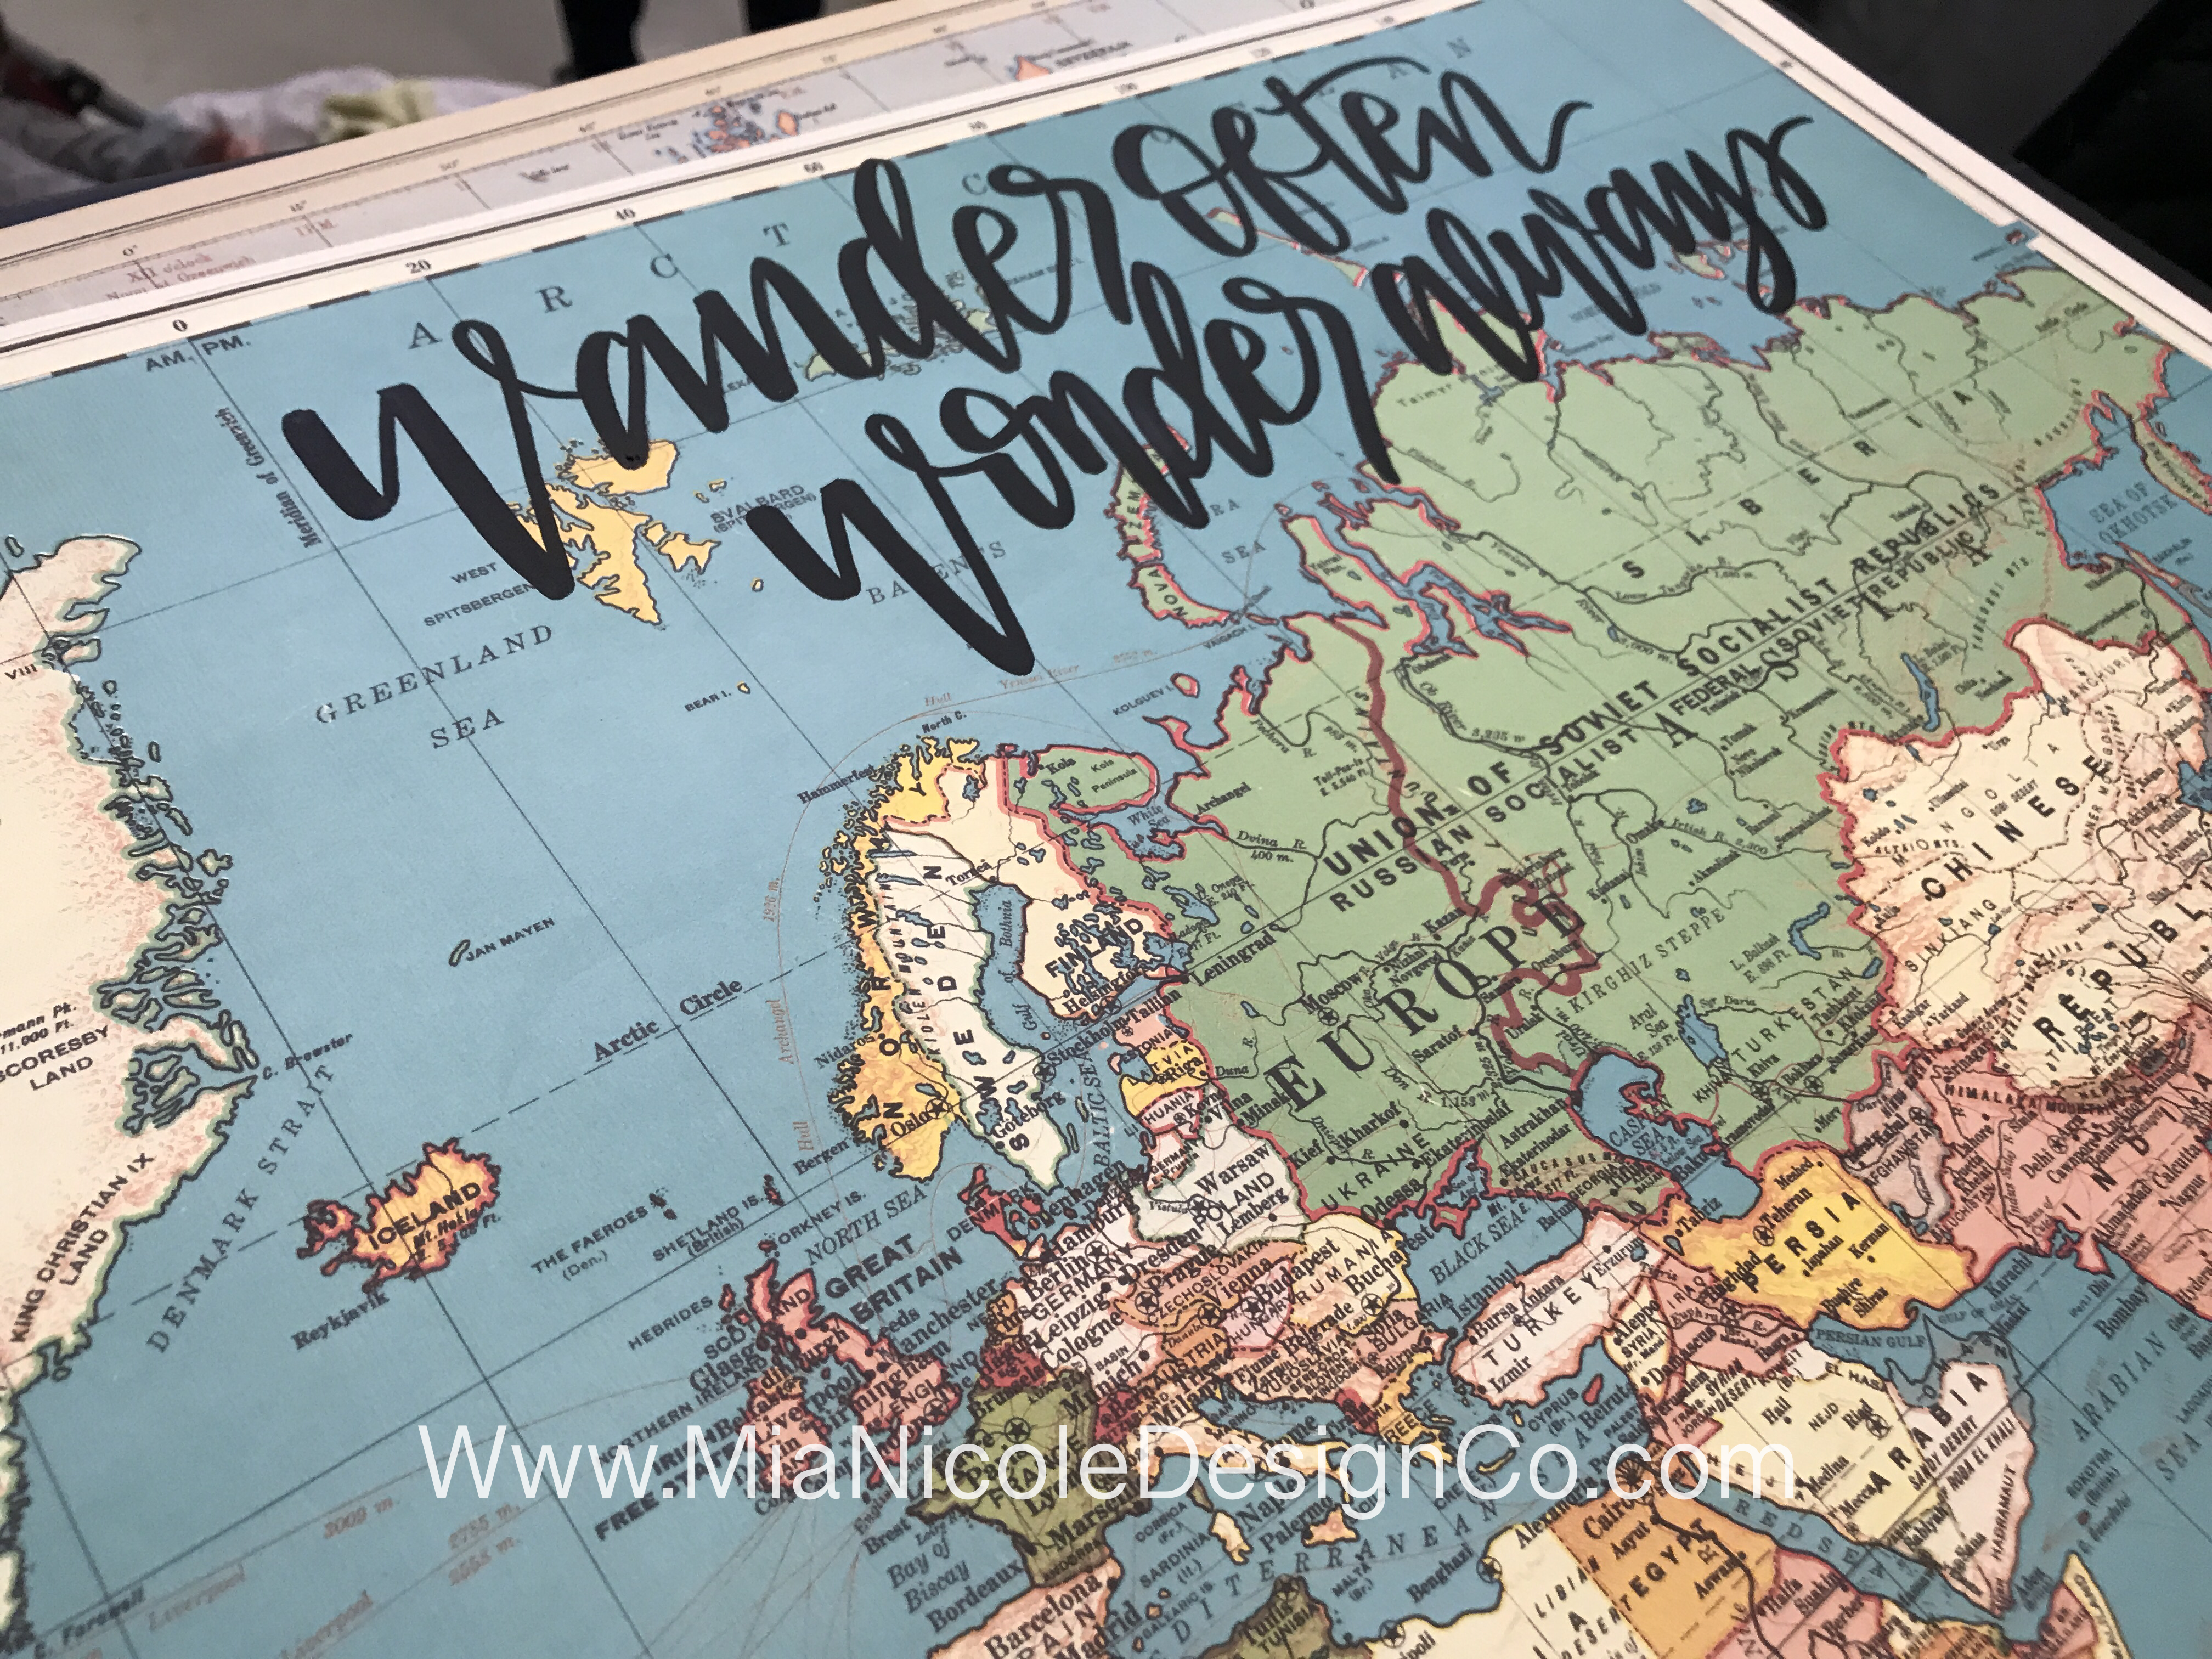 wander often, wonder always hand lettered calligraphy on a world map